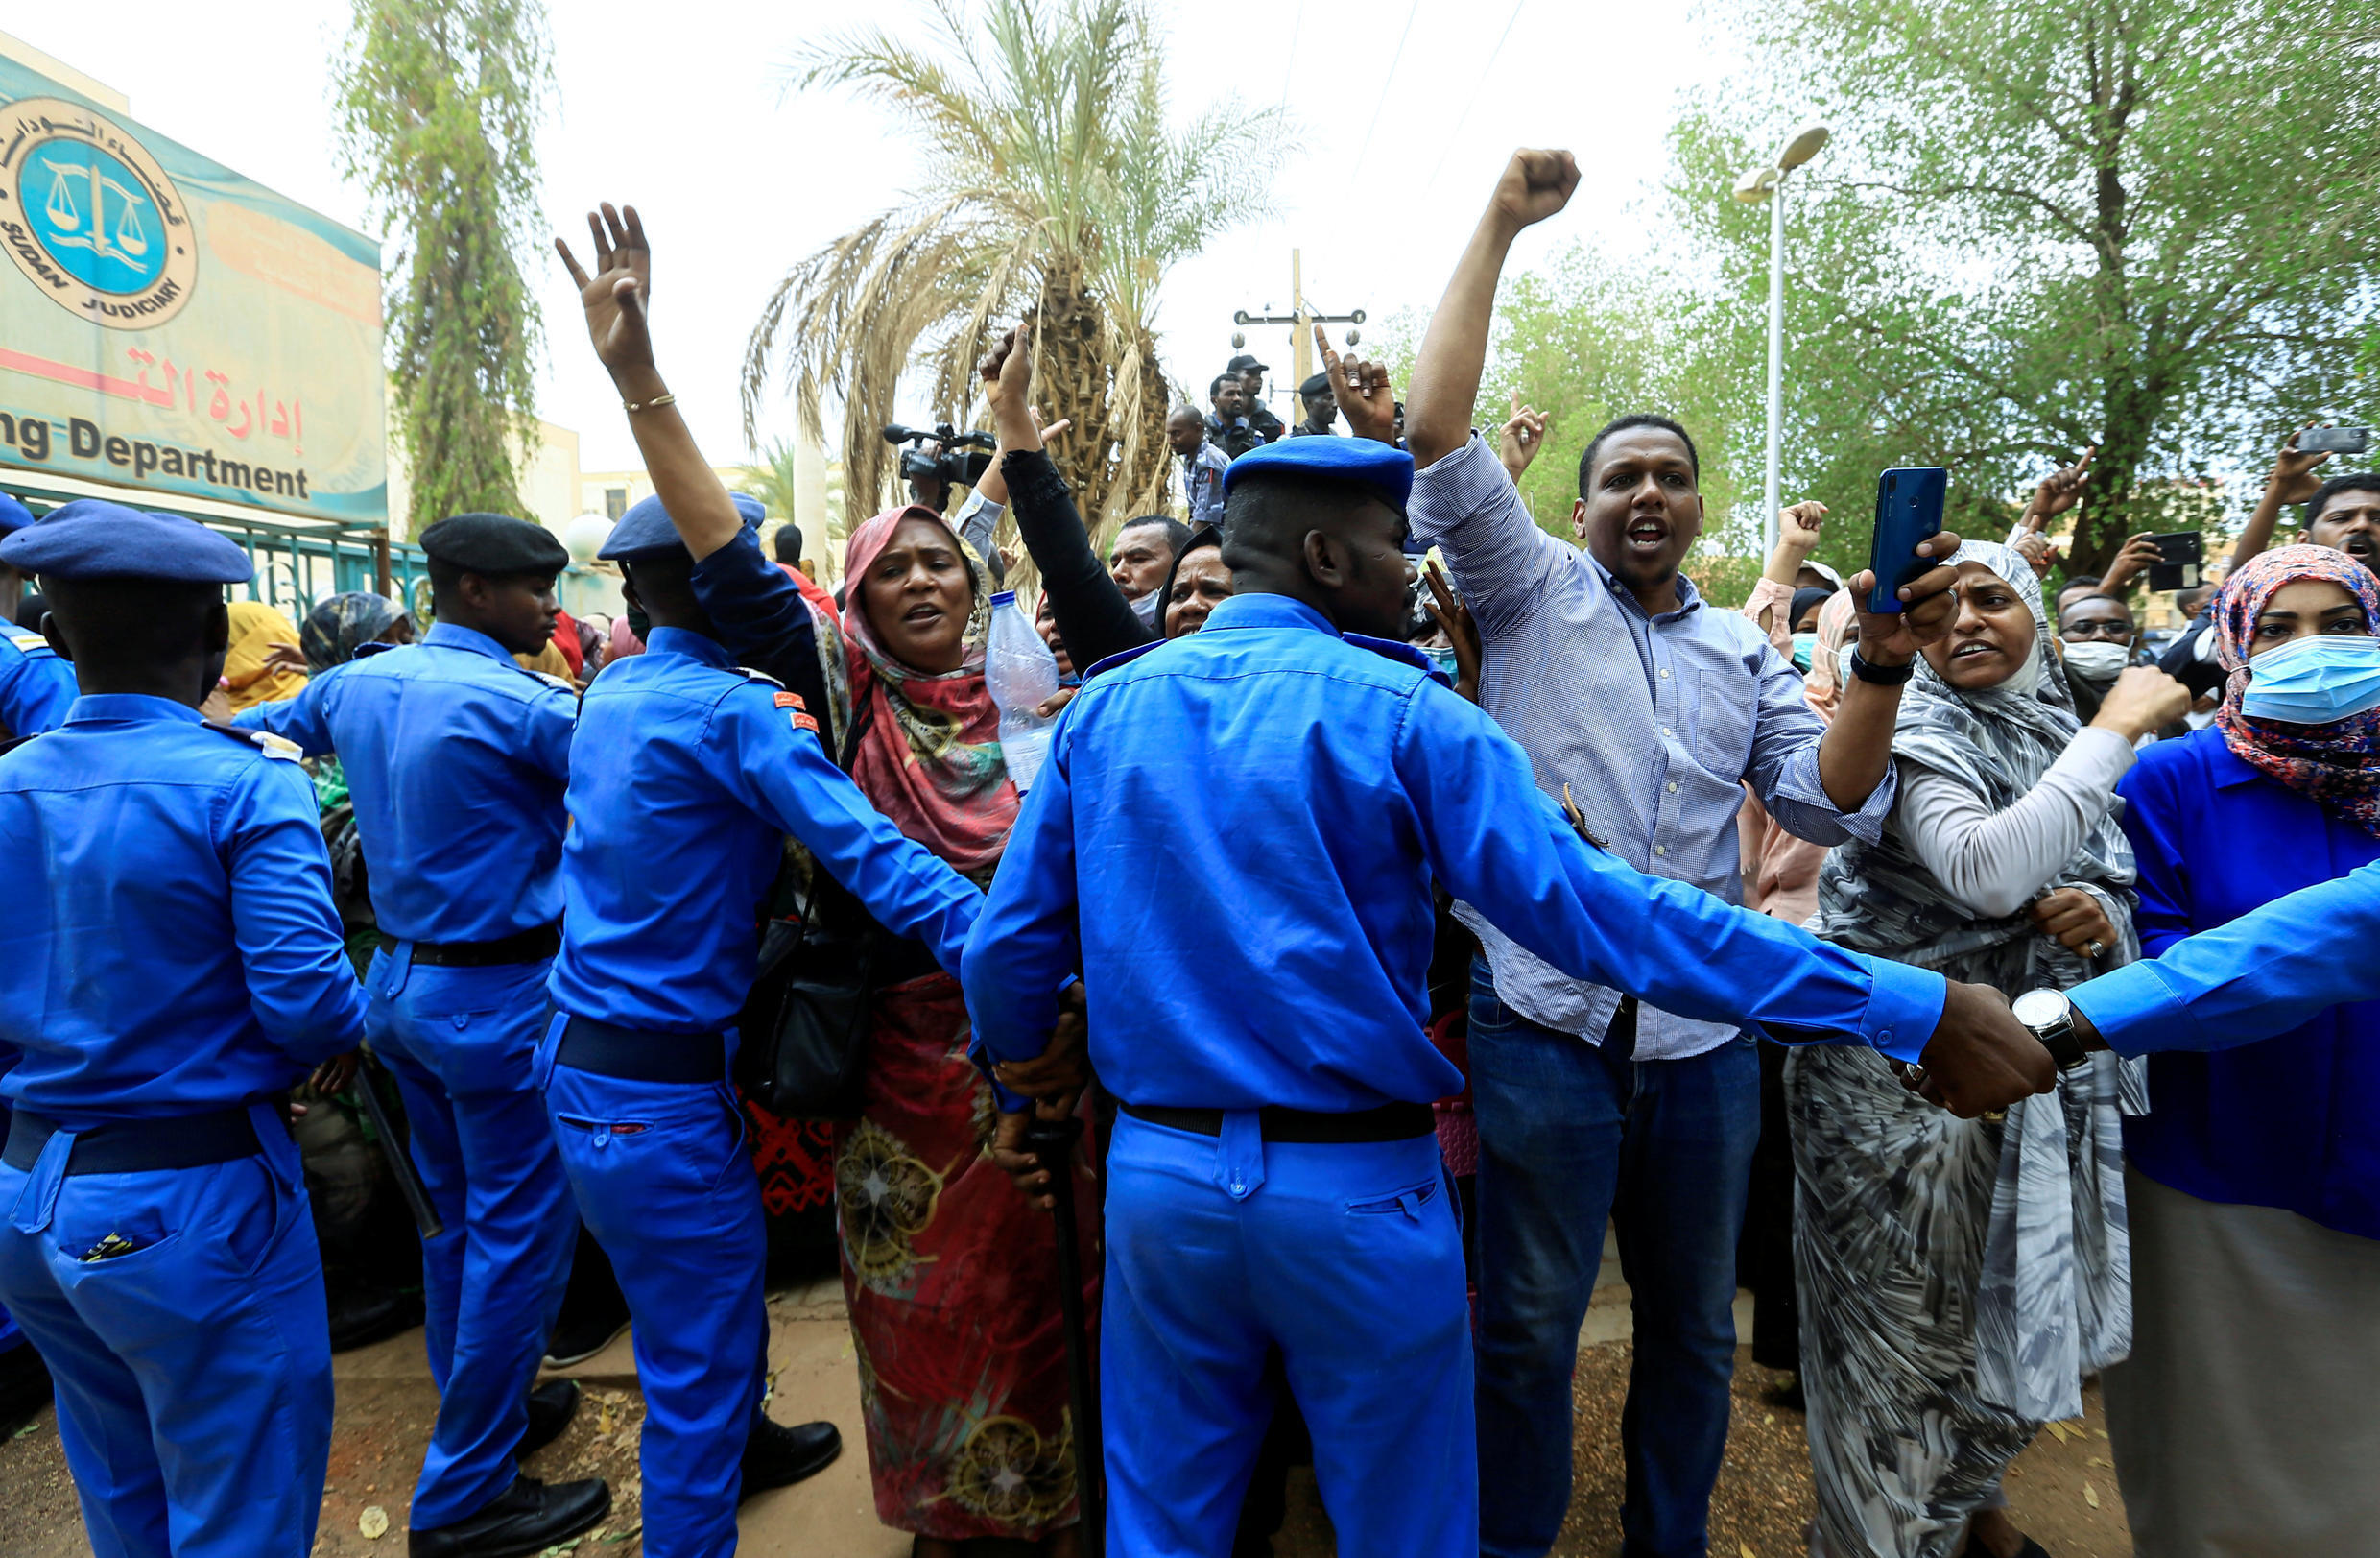 Sudanese police officers control civilians as they chant slogans outside the court during the new trial against ousted President Omar al-Bashir and some of his former allies on charges of leading a military coup that brought the autocrat to power in 1989 in Khartoum, Sudan July 21, 2020.